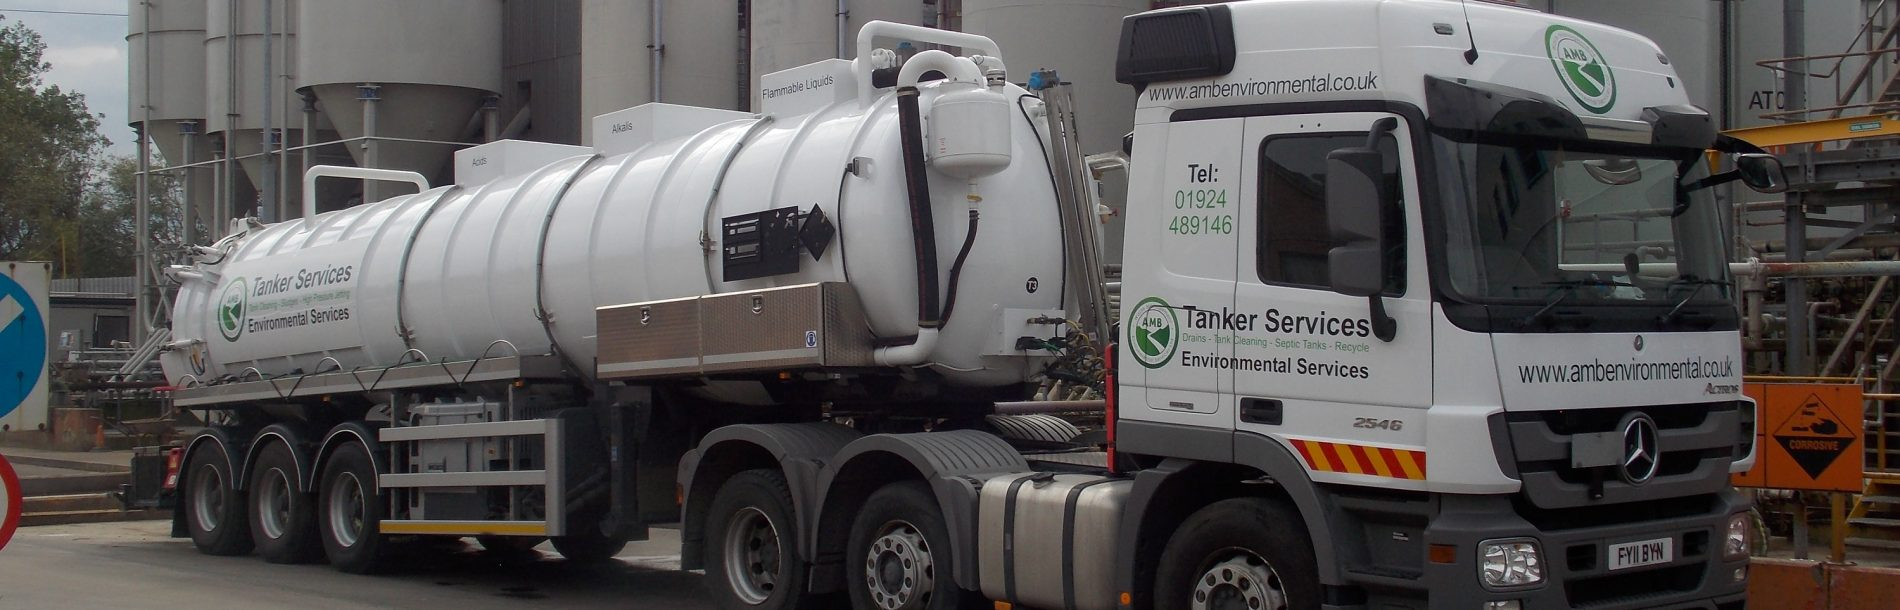 AMB Environmental - Banner Image - Tanker Services Crop Final2